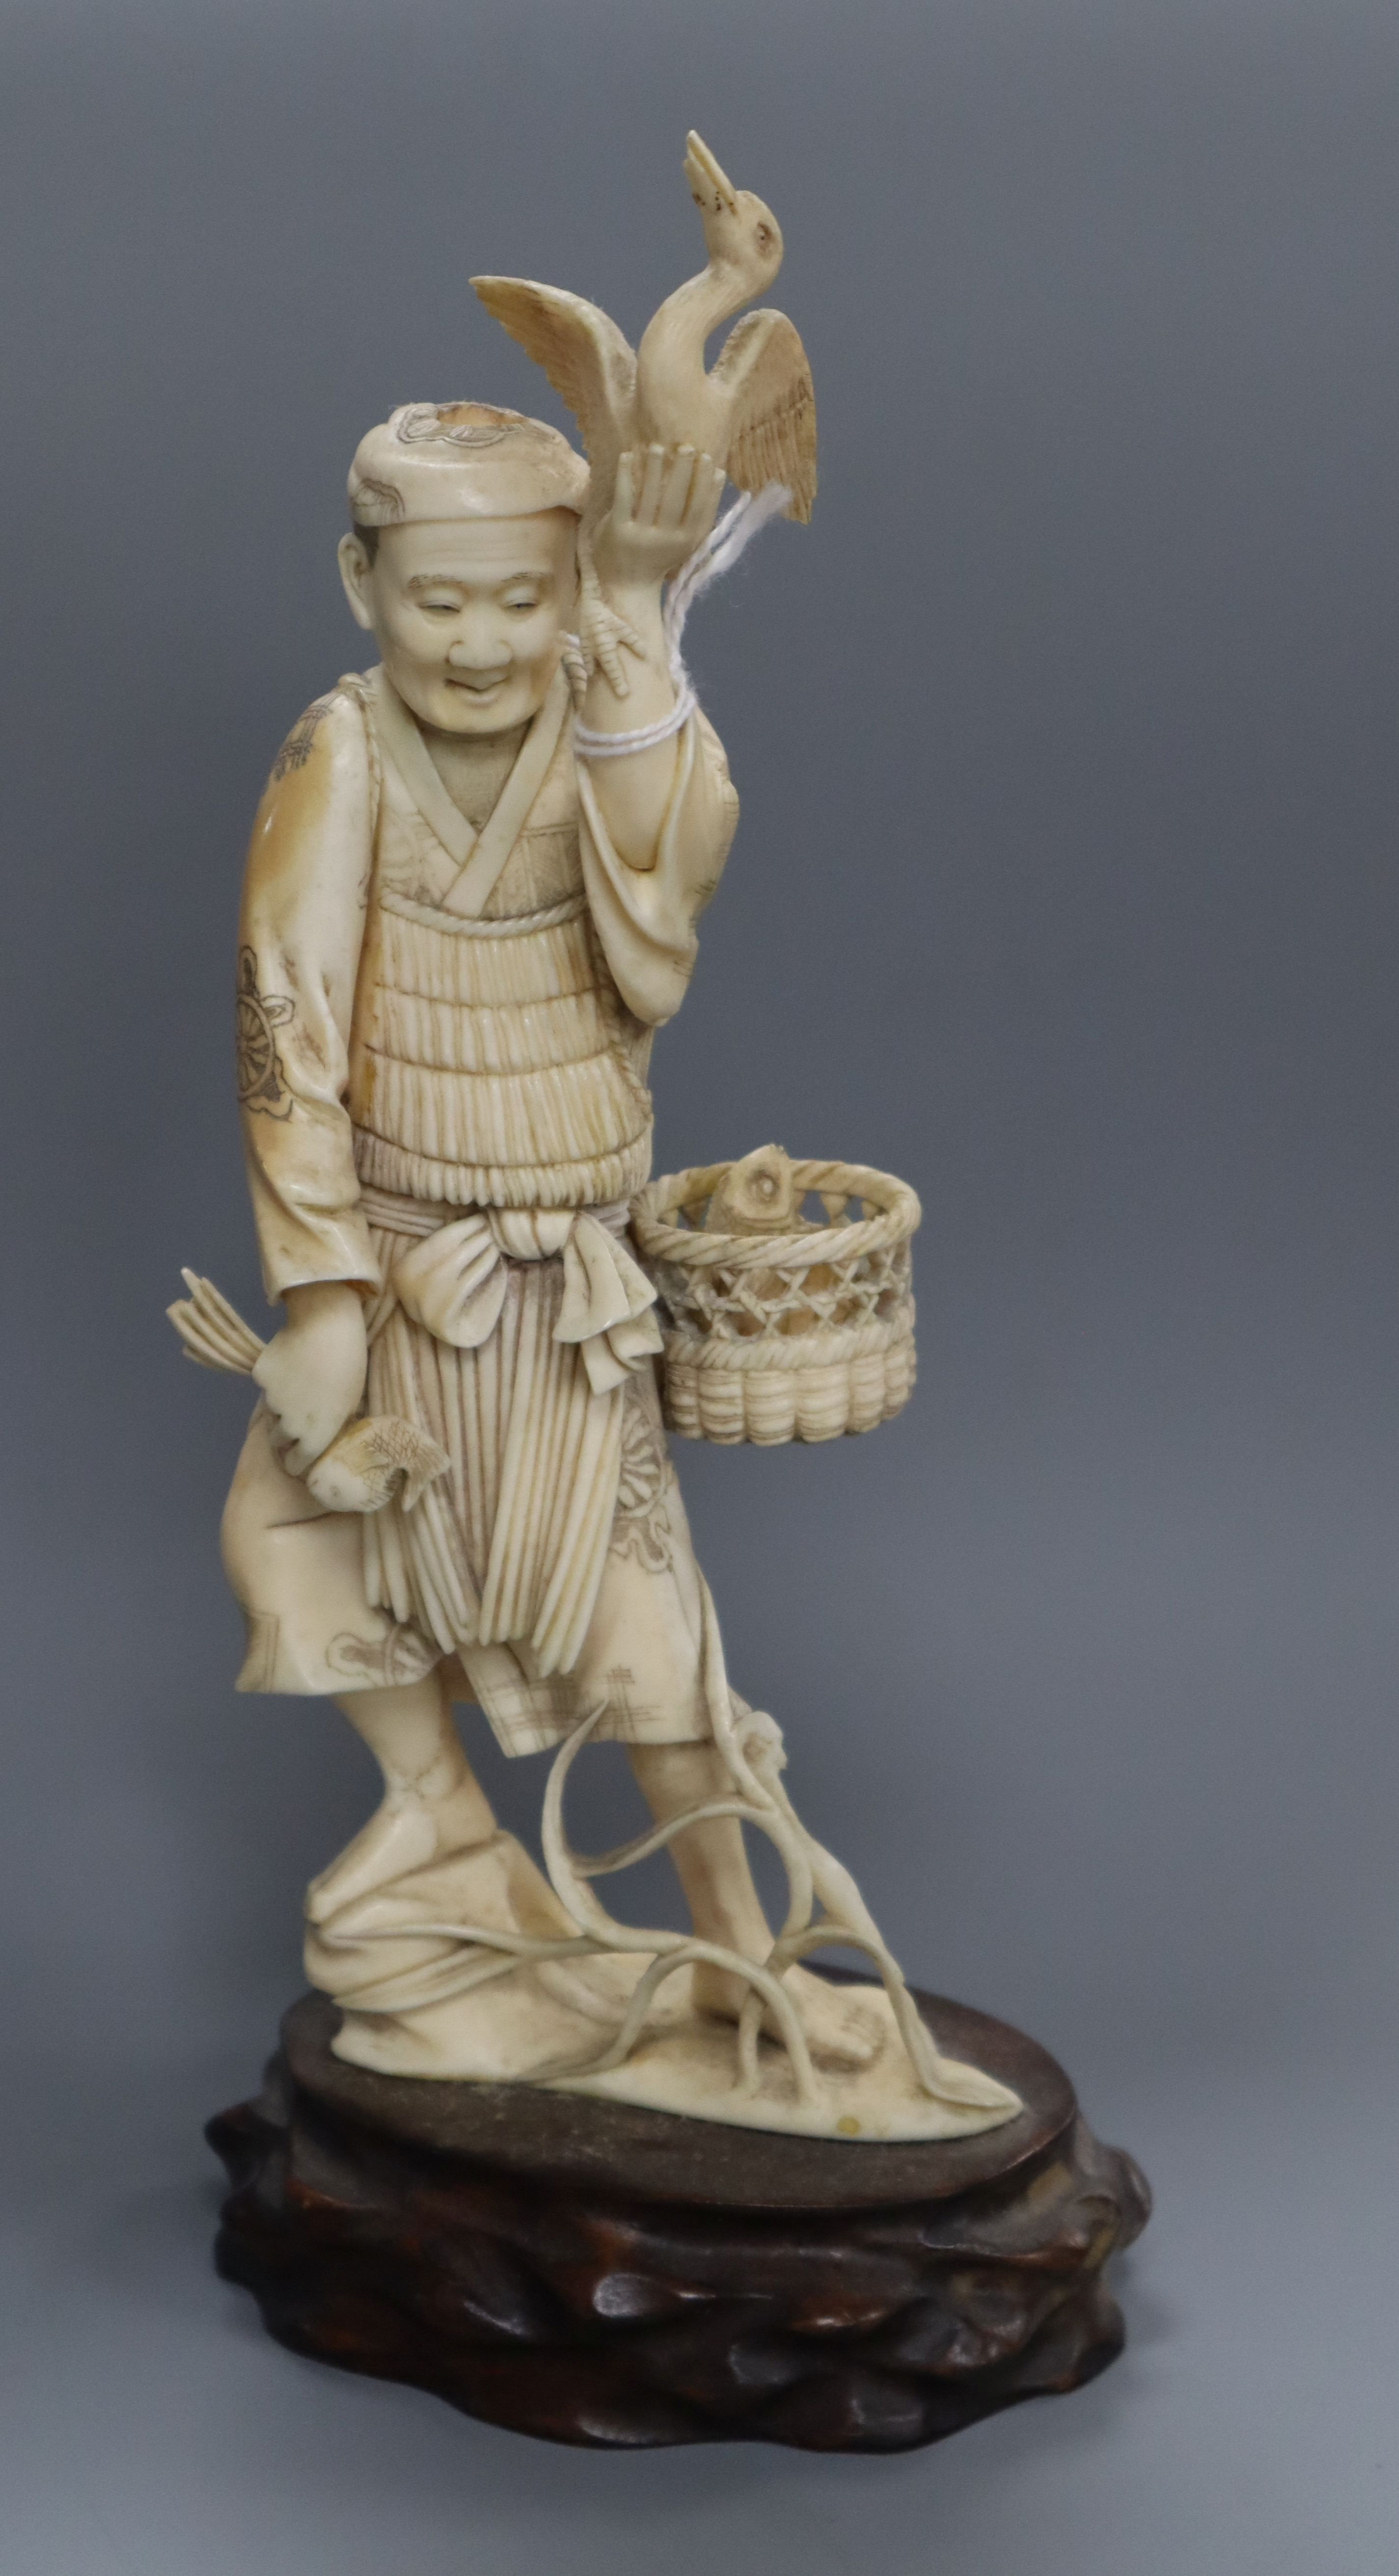 A Japanese ivory figure of a cormorant fisherman, early 20th century height 24cm